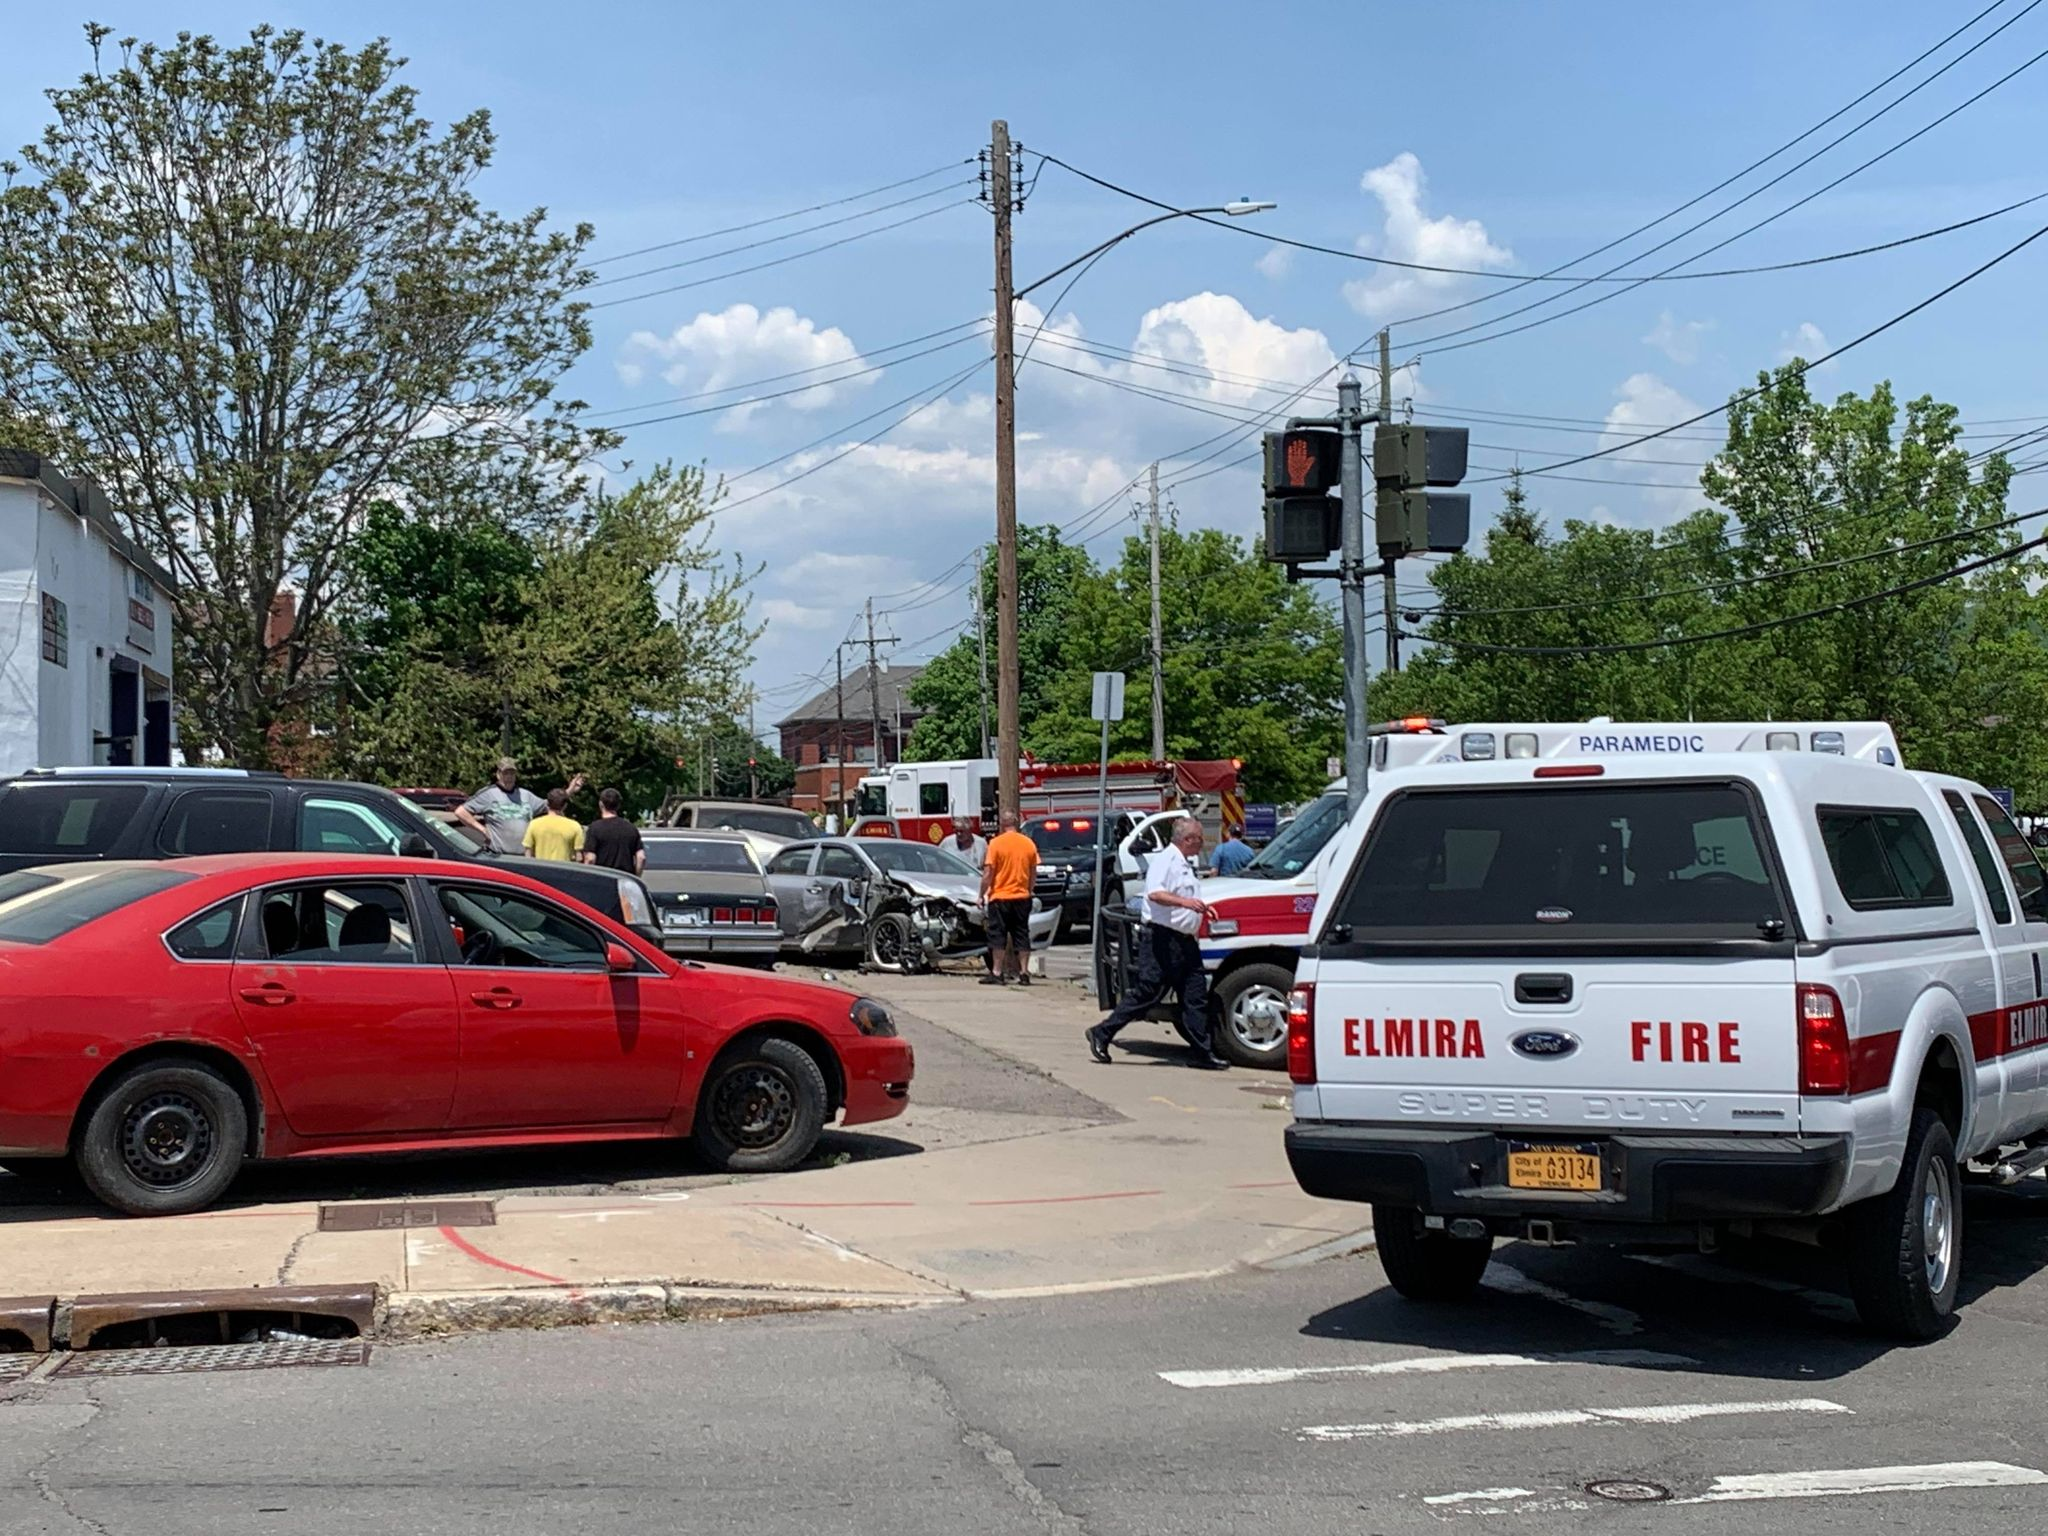 Multi-vehicle accident closes Madison Ave near St. Joes, power lines down